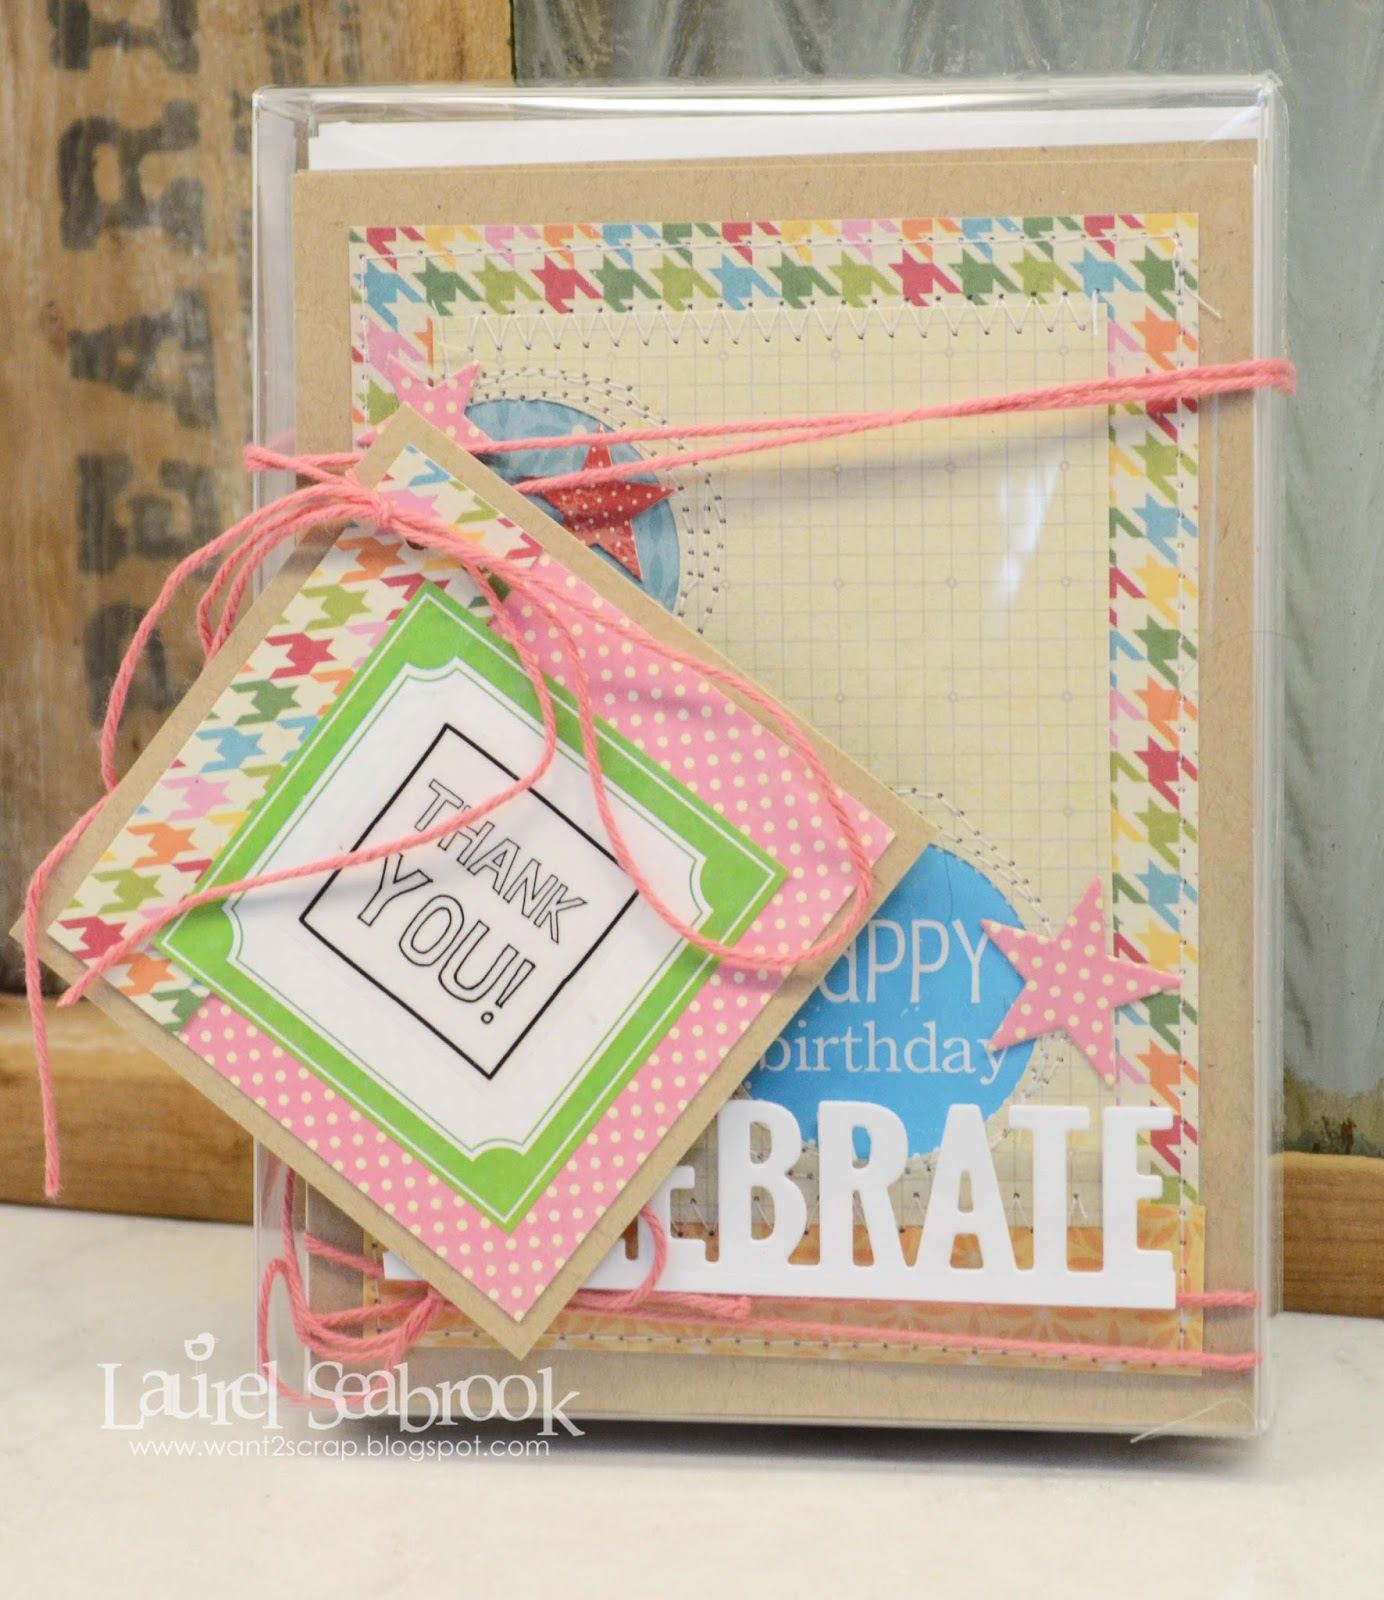 SRM Stickers Blog - Birthday Card Gift Set by Laurel - #birthday #borders #card set #cards #clear box #stickers #twine